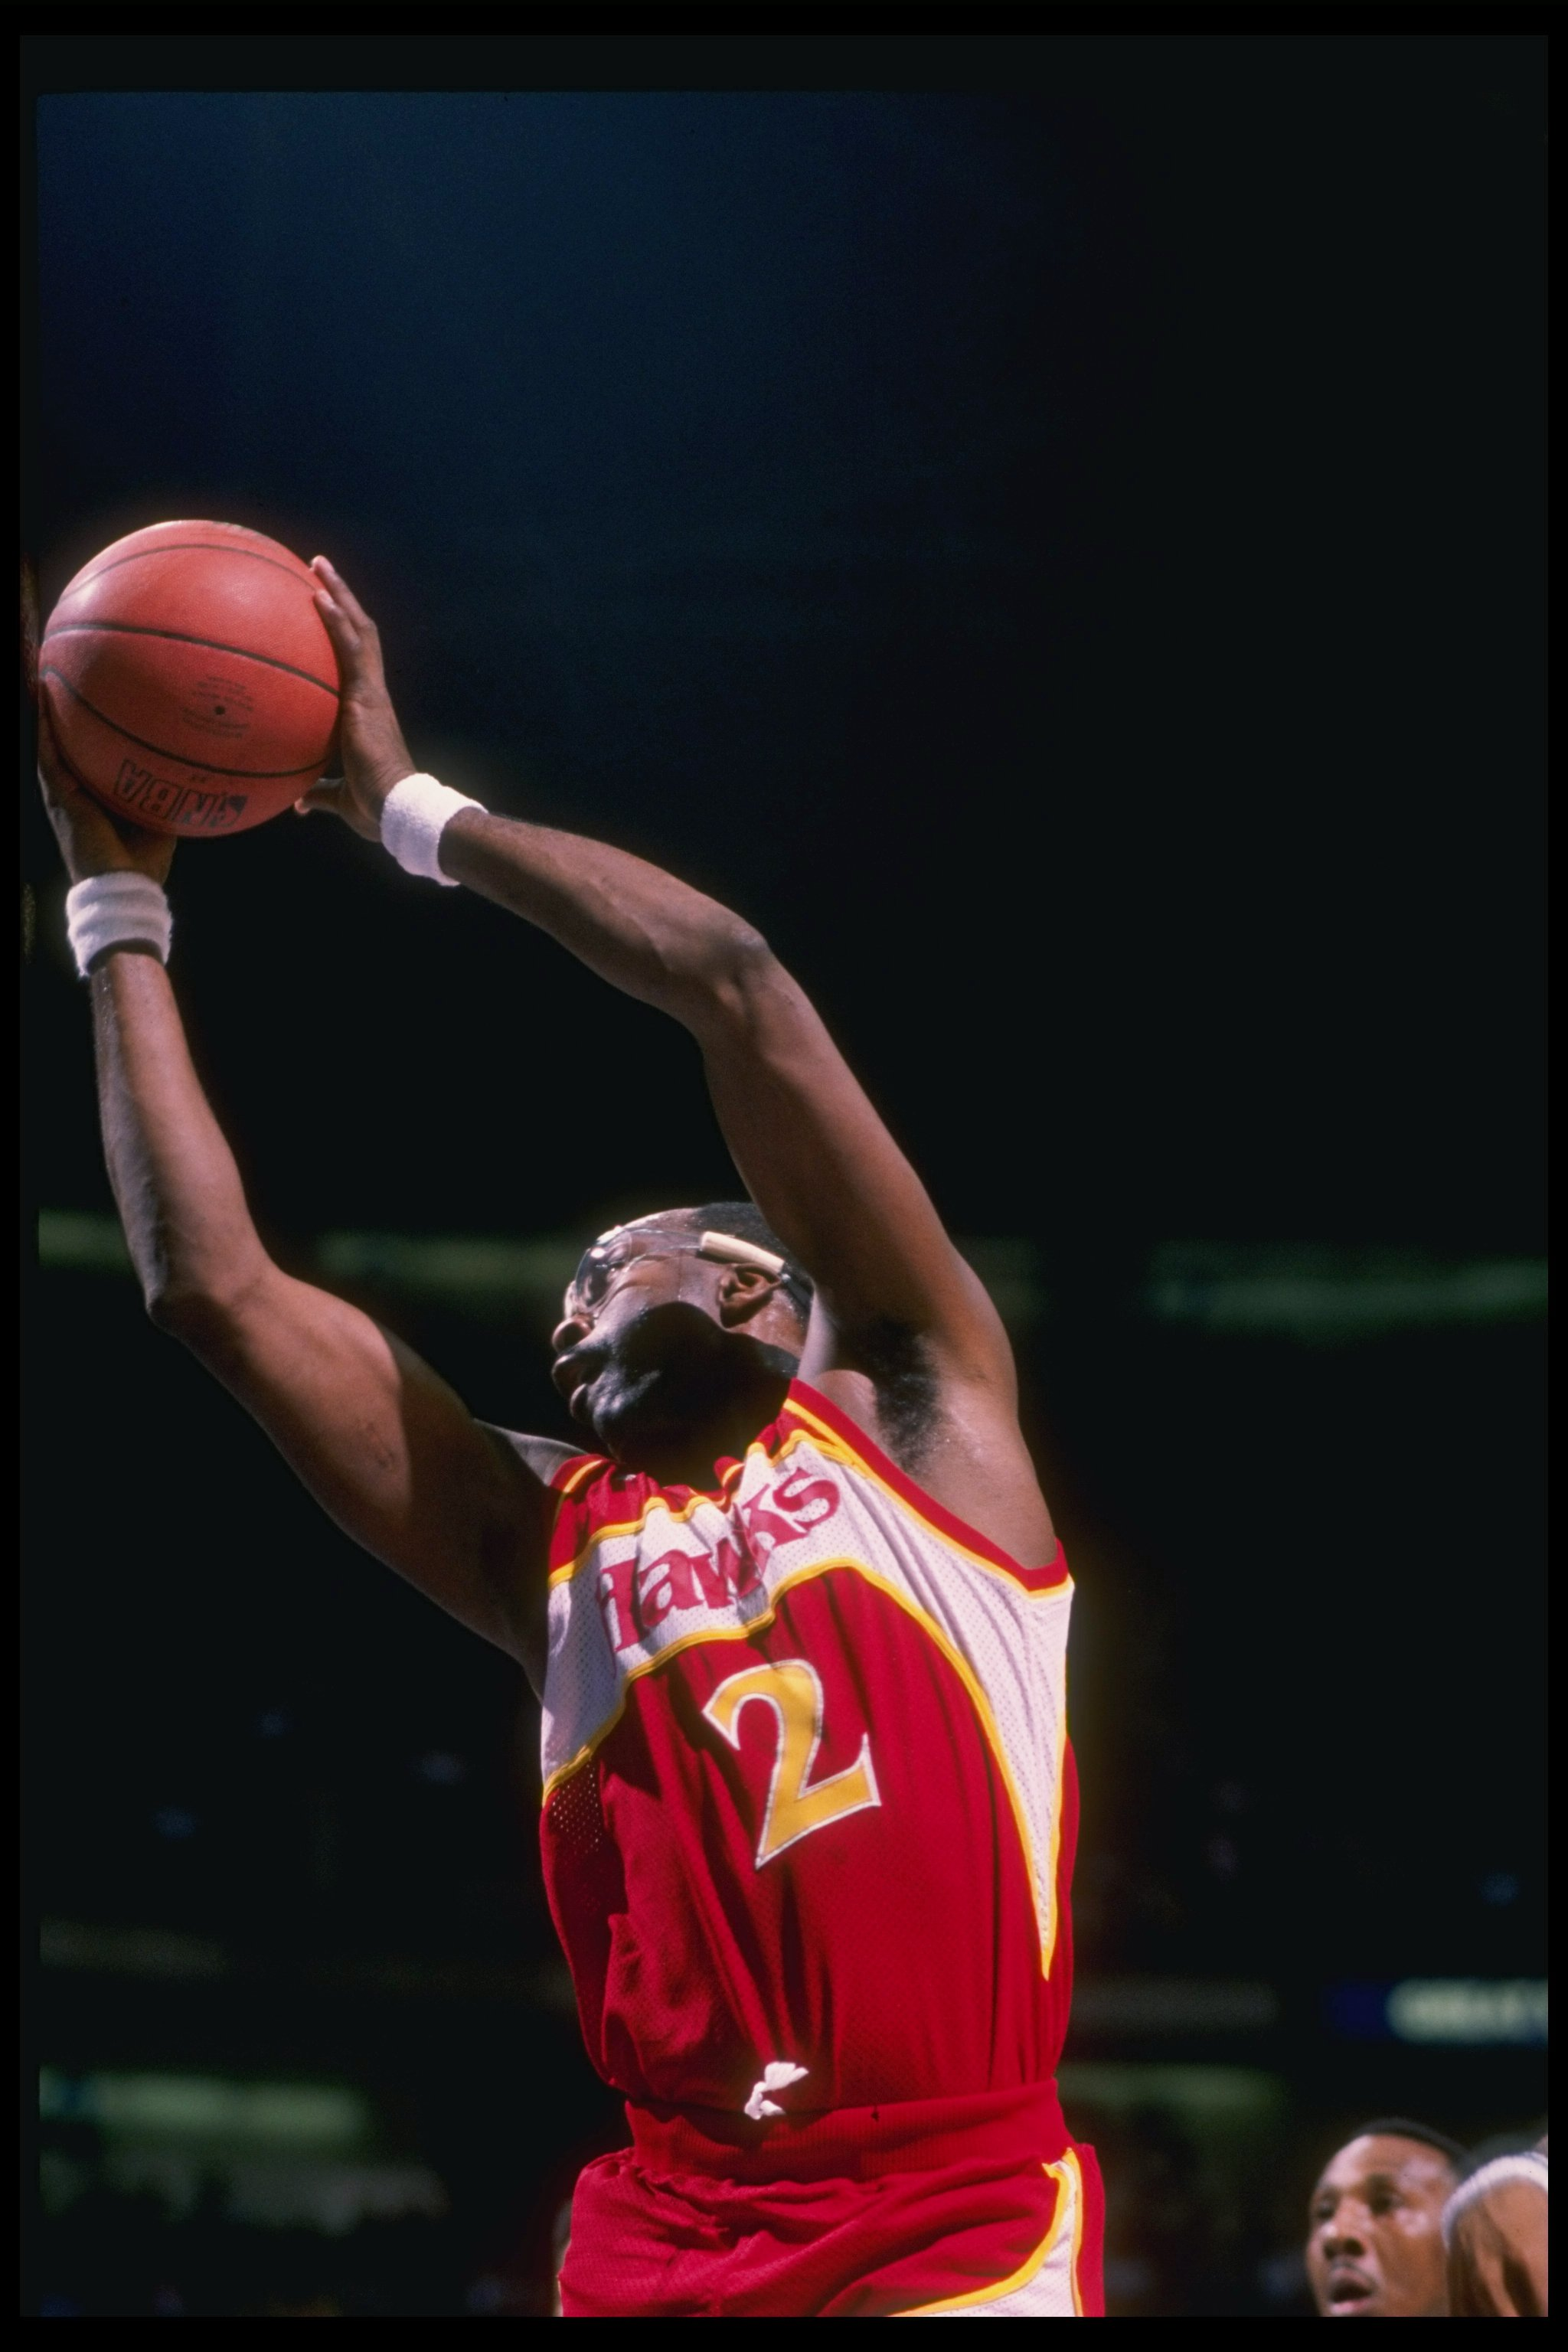 Center Moses Malone of the Atlanta Hawks jumps to the basket during a game.